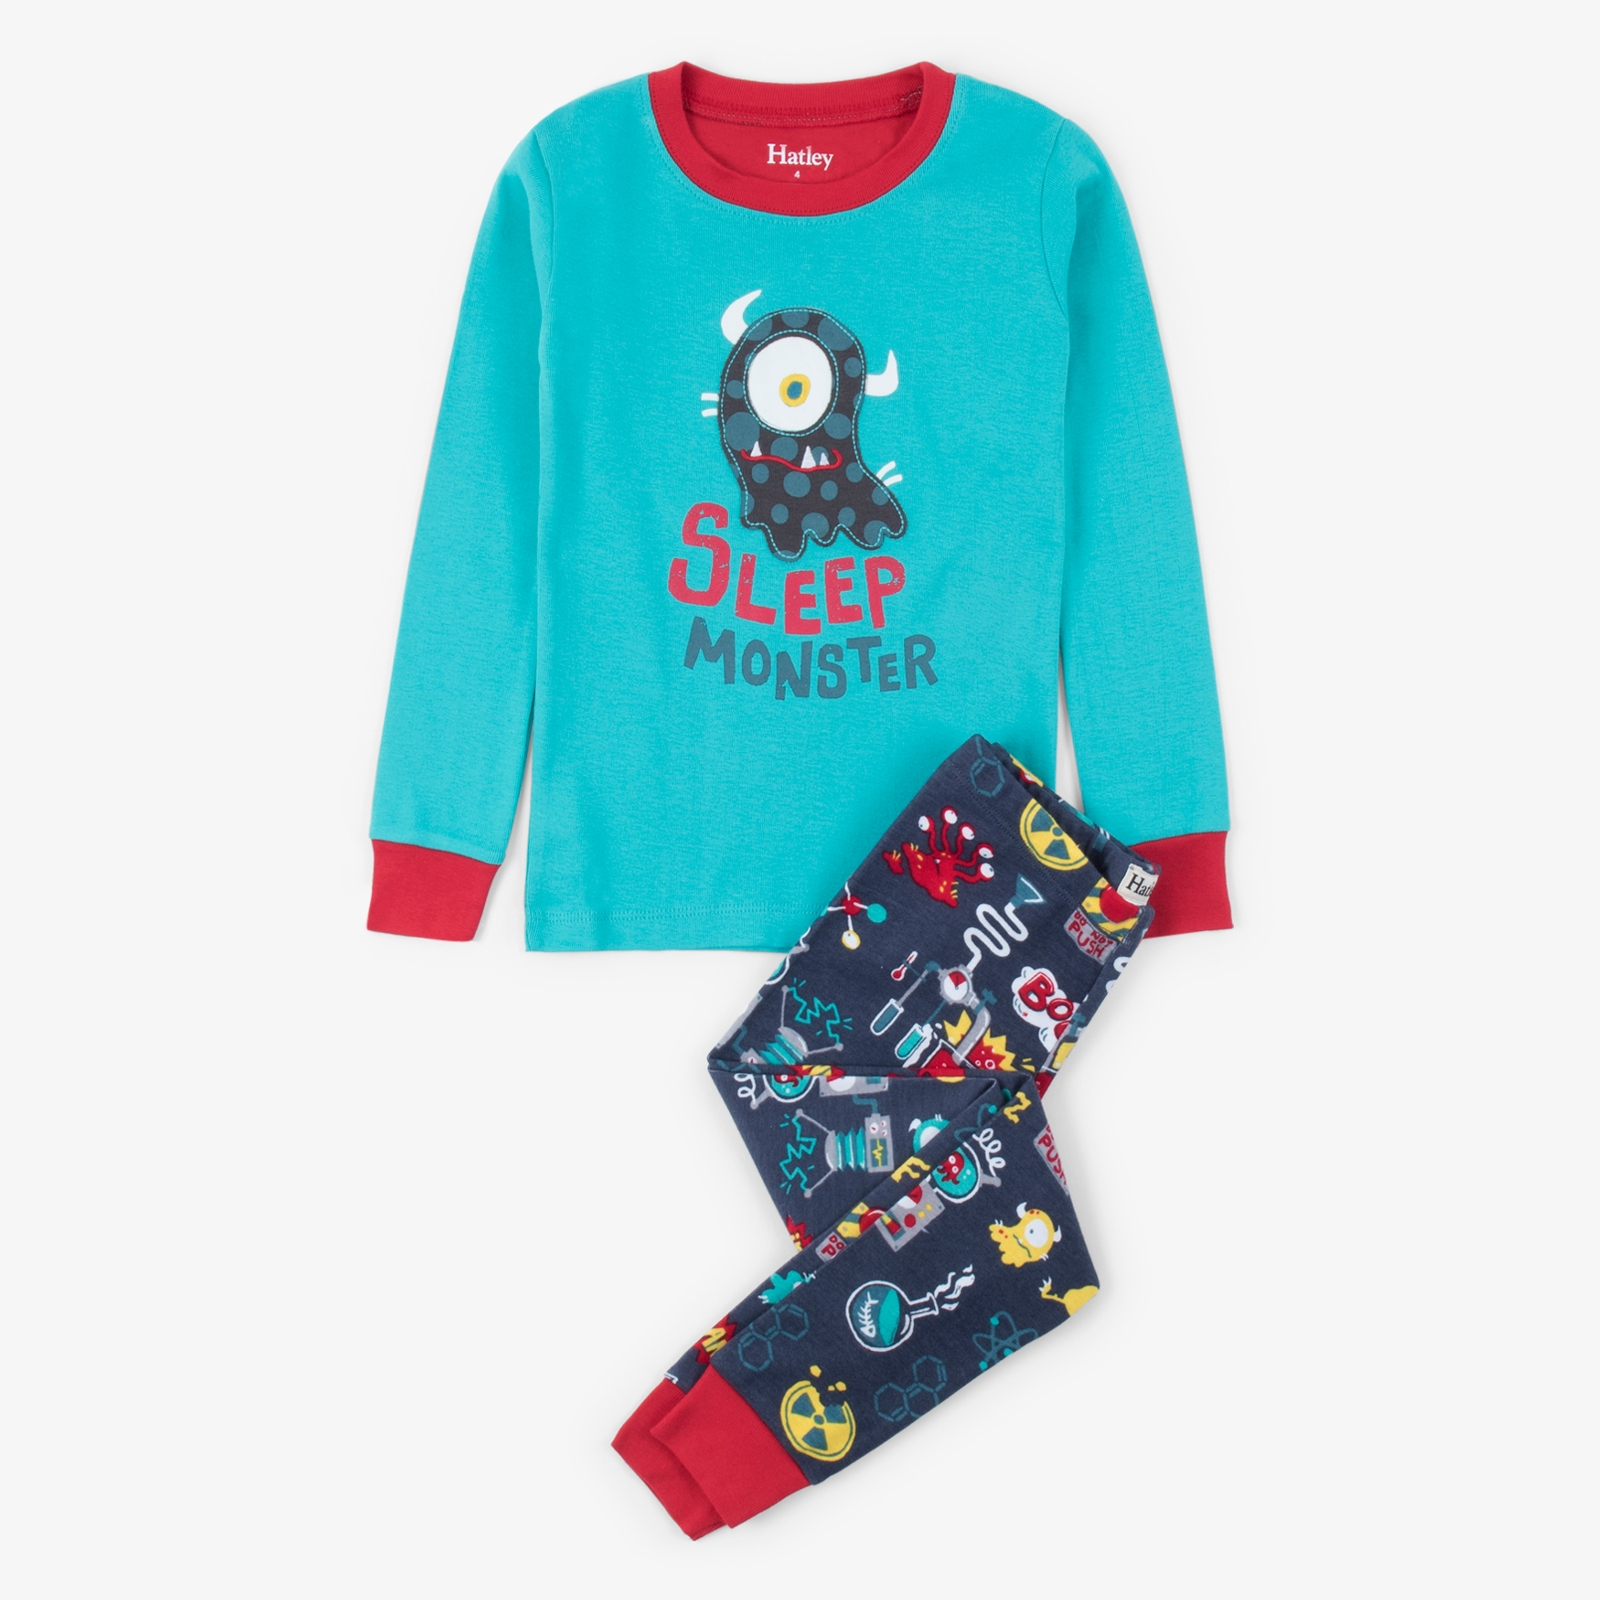 Hatley pijama niño/a sleep monster